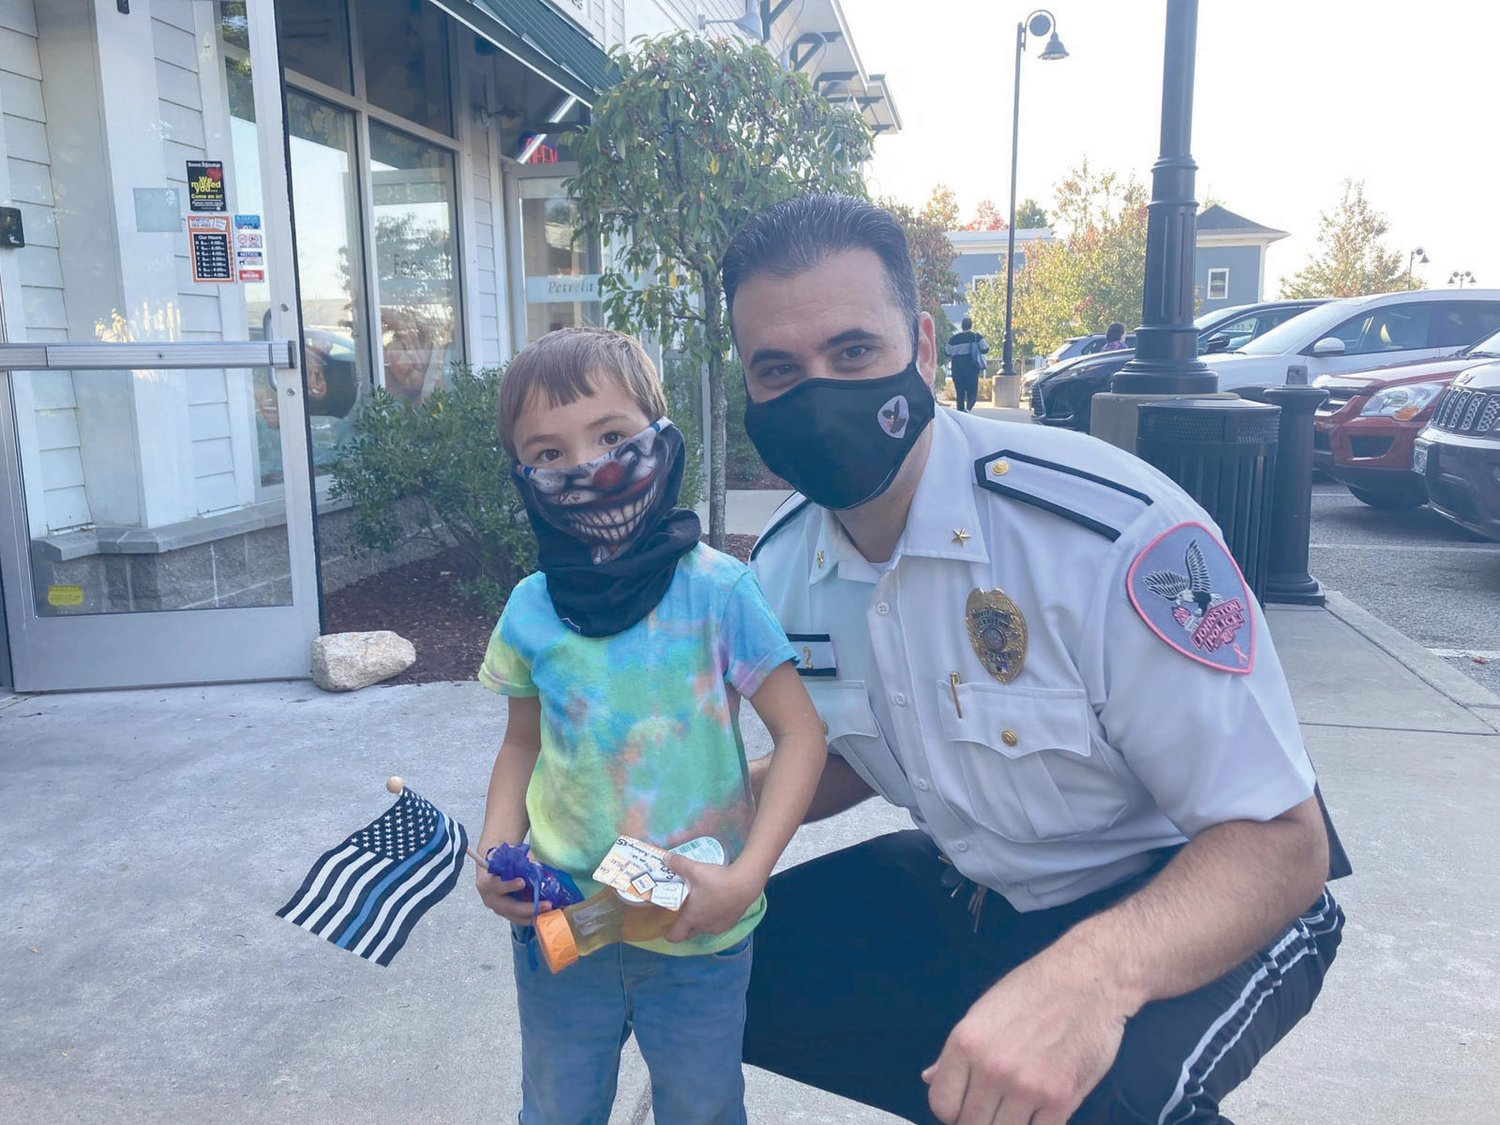 KINDERGARTEN COP: Four-year-old Wyatt Desanto wanted to show Deputy Chief Mark Vieira his scary clown mask.